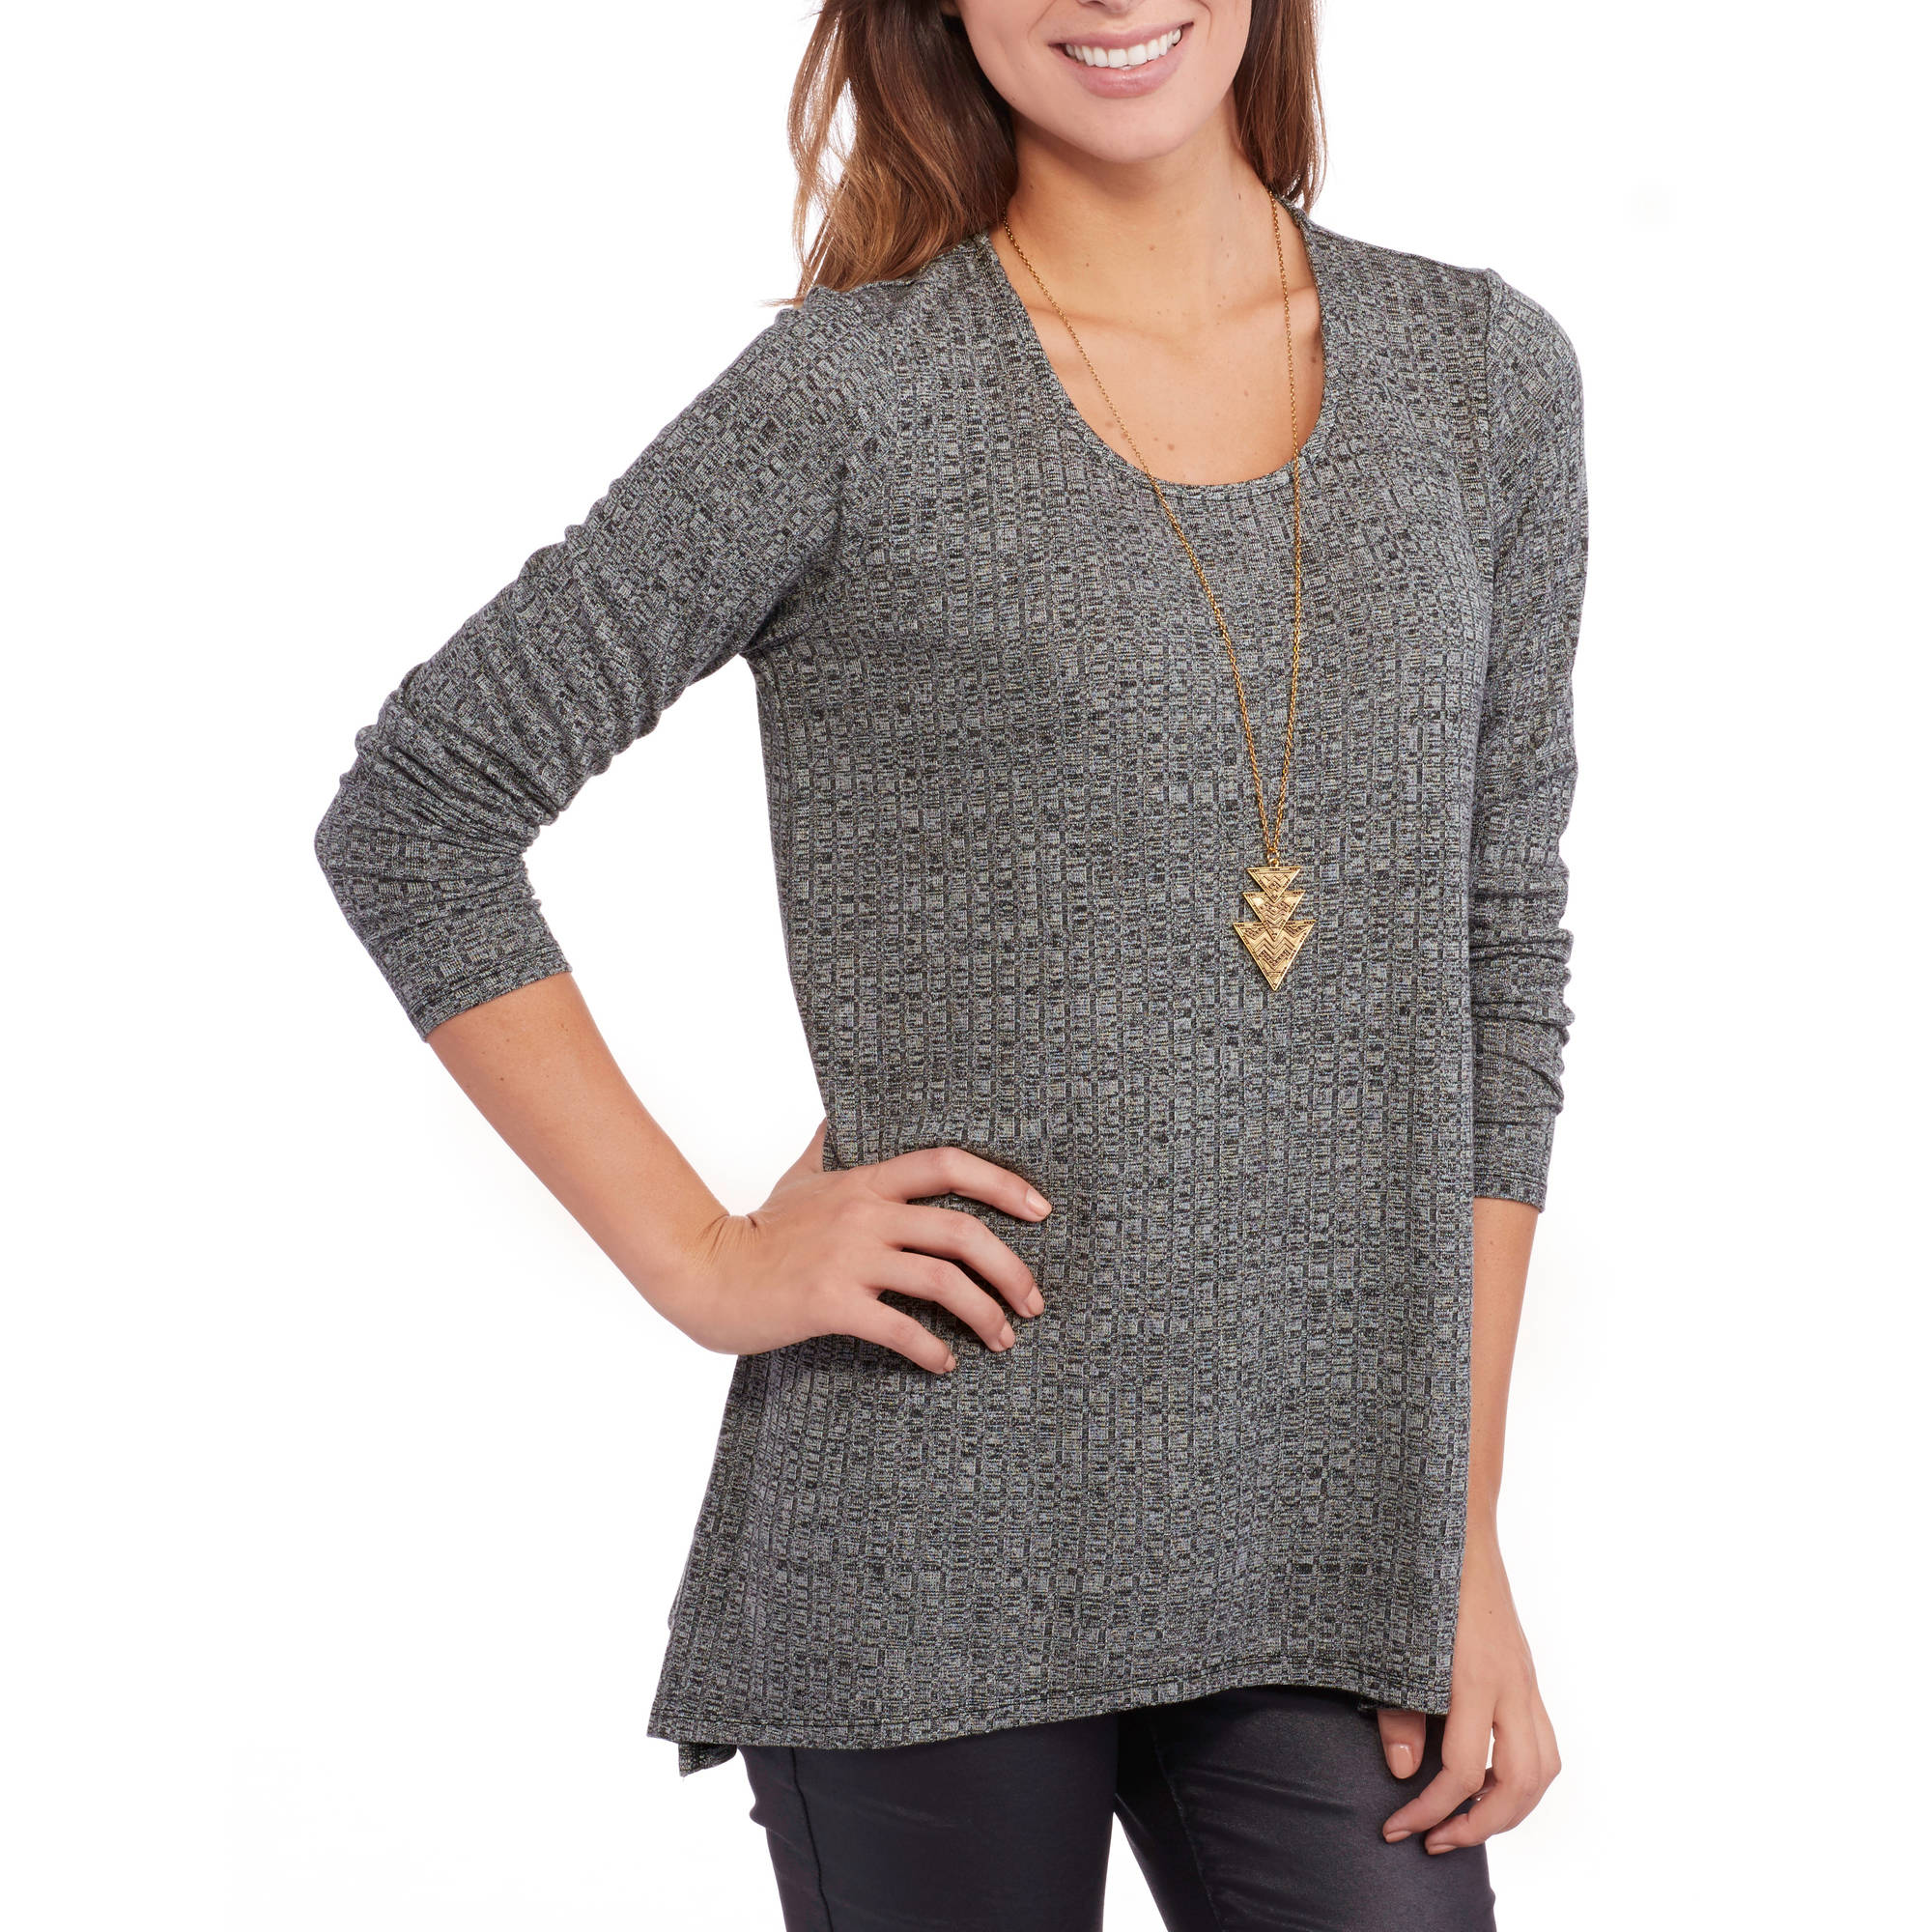 Tru Self Women's 2-Fer Solid Long Sleeve T-Shirt with Necklace